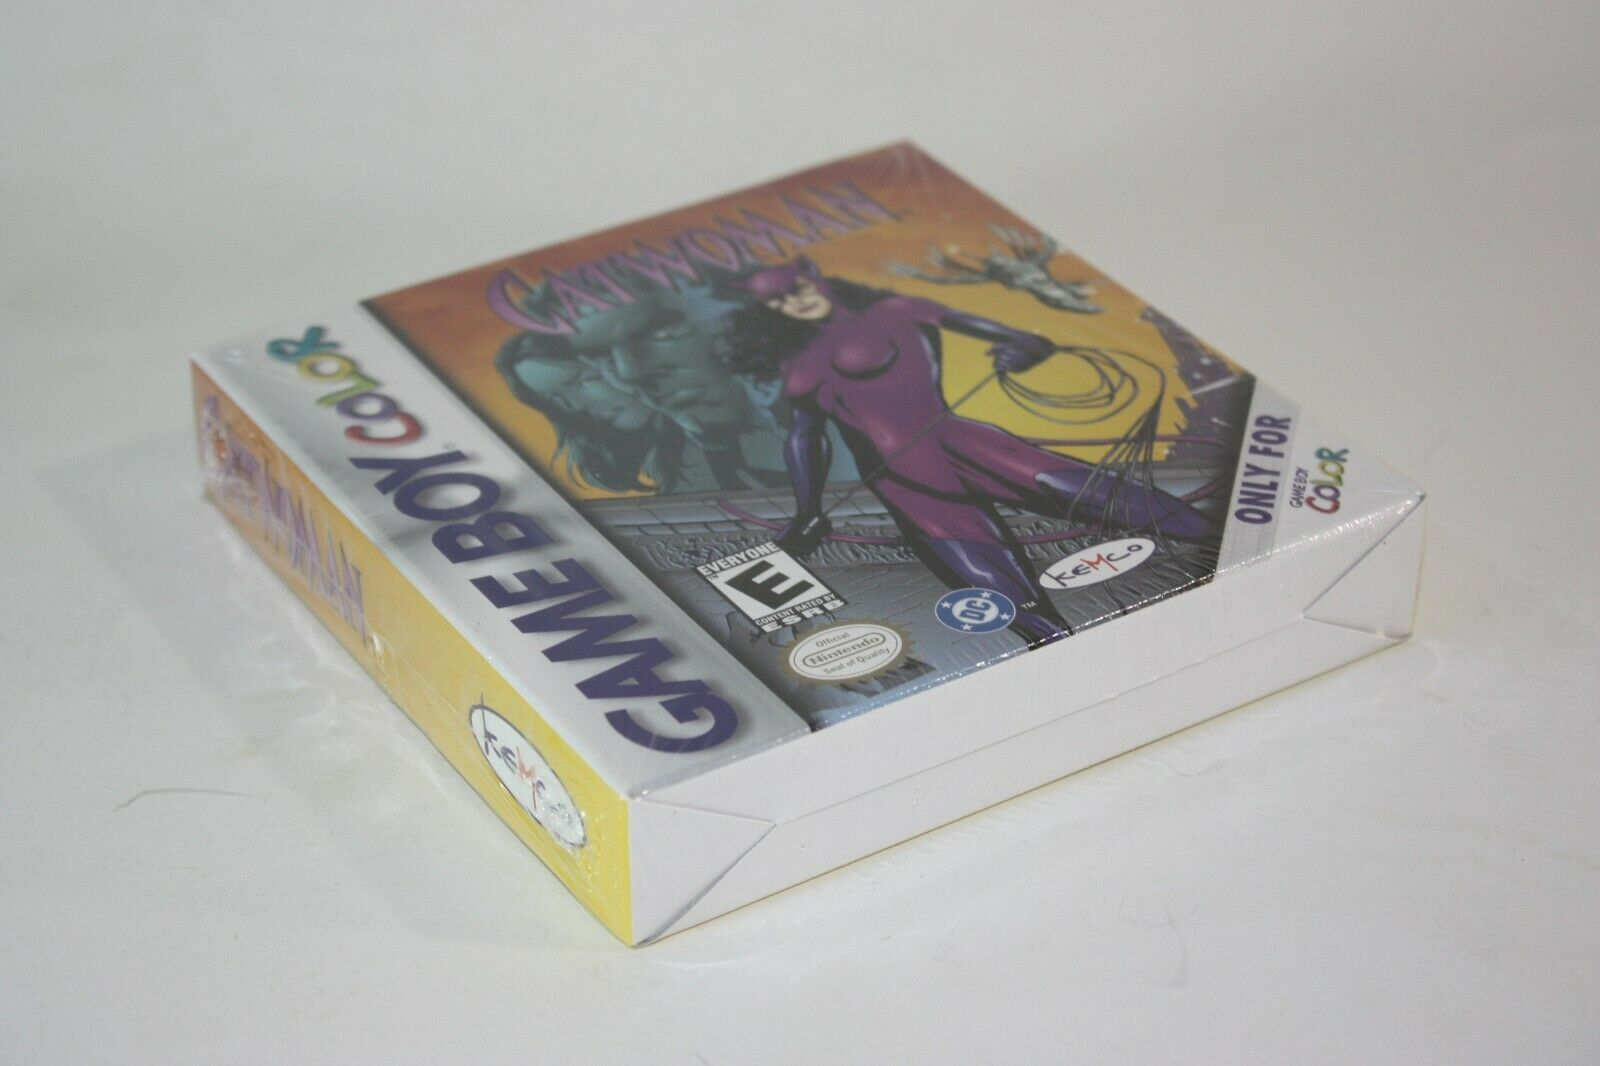 Catwoman Nintendo Game Boy Color 1999 New Sealed image 2